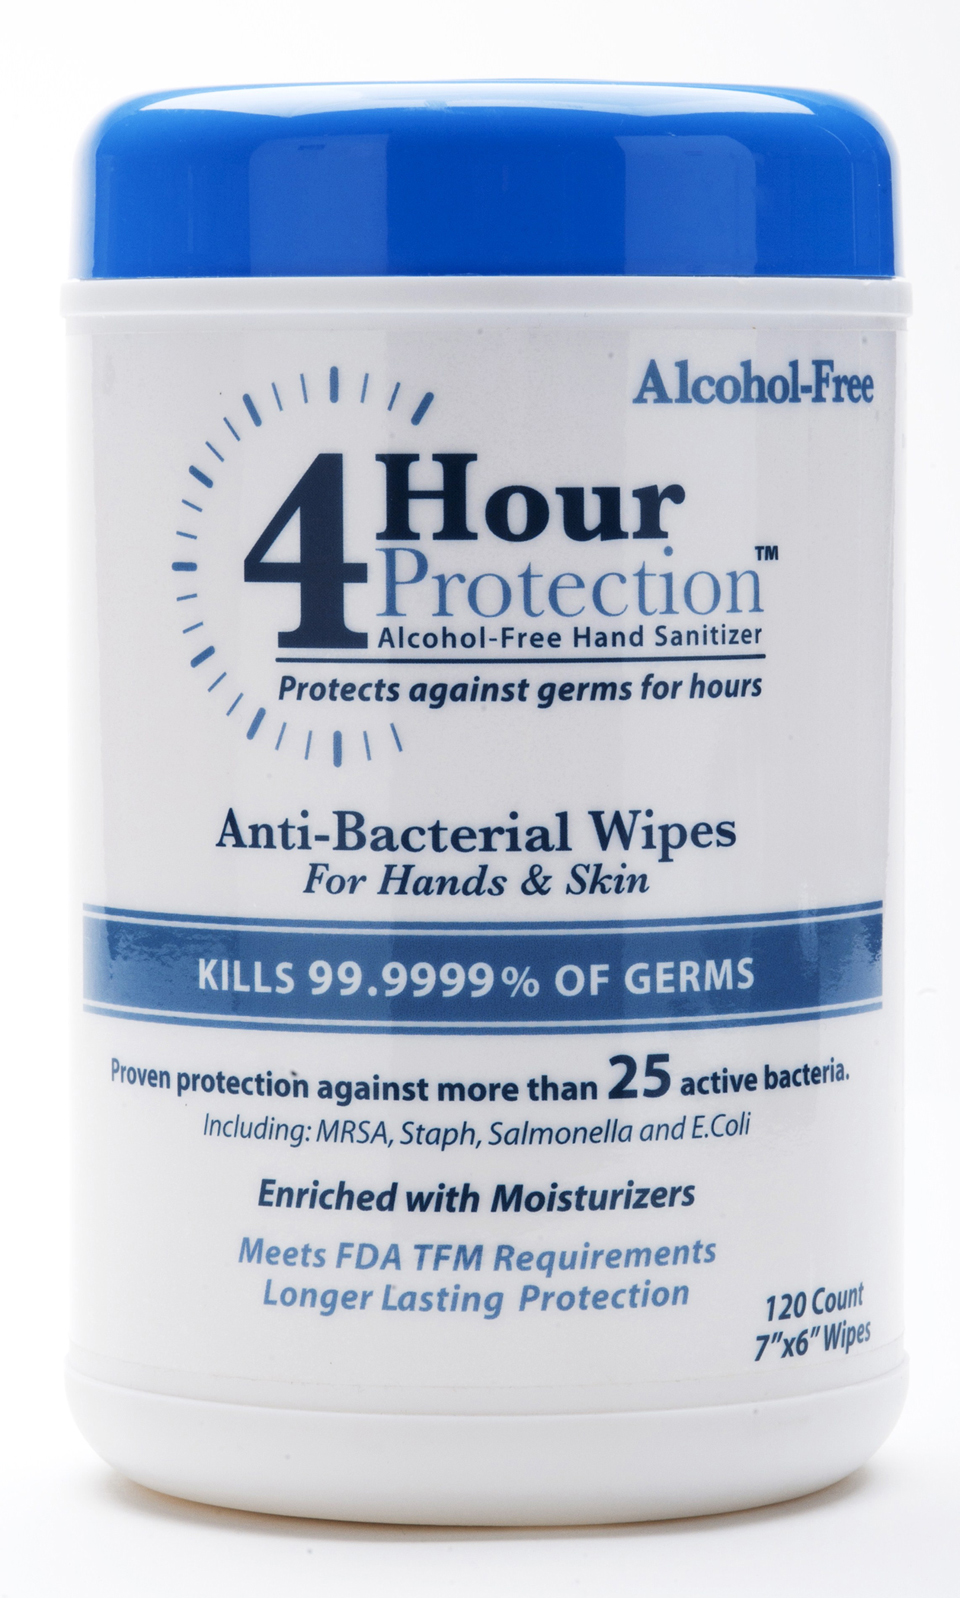 4 Hour Protection:Personal Hand Wipes 120 Count